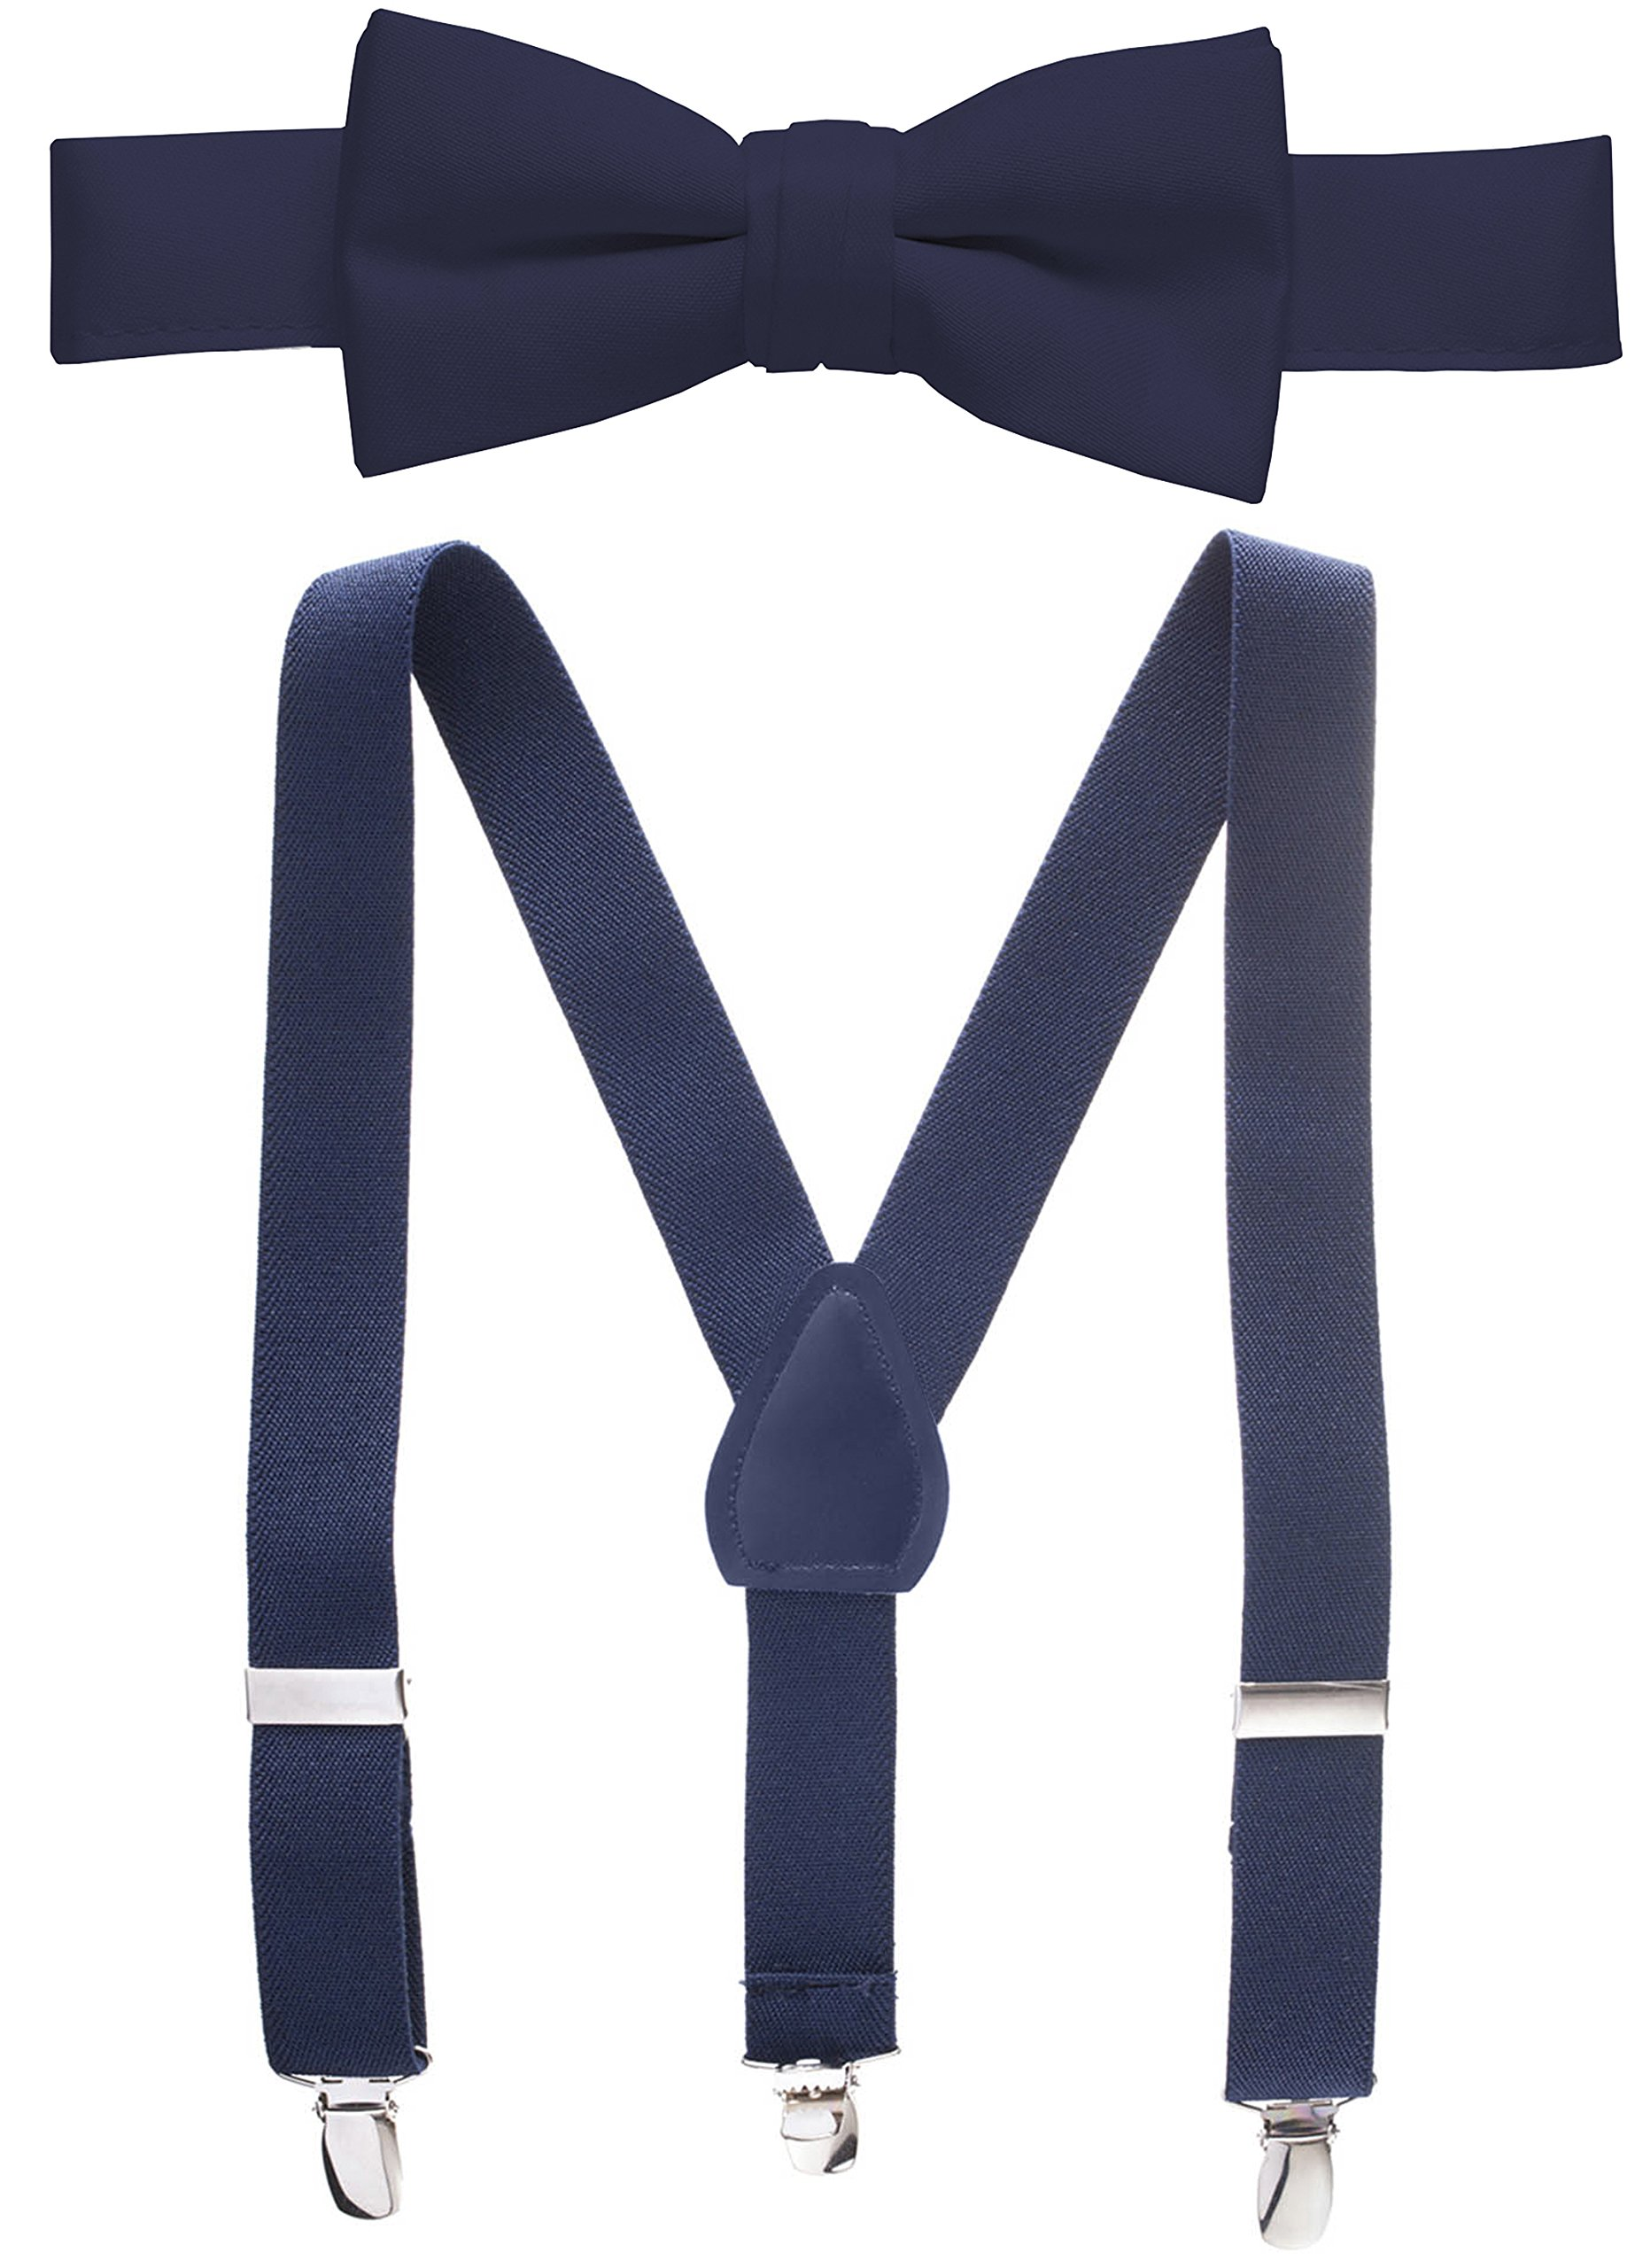 Hold'Em Suspender and Bow Tie Set for Kids, Boys, and Baby - Proudly Made in USA - Extra Sturdy Polished Silver Metal Clips, Pre tied Bow Tie-Navy 26''